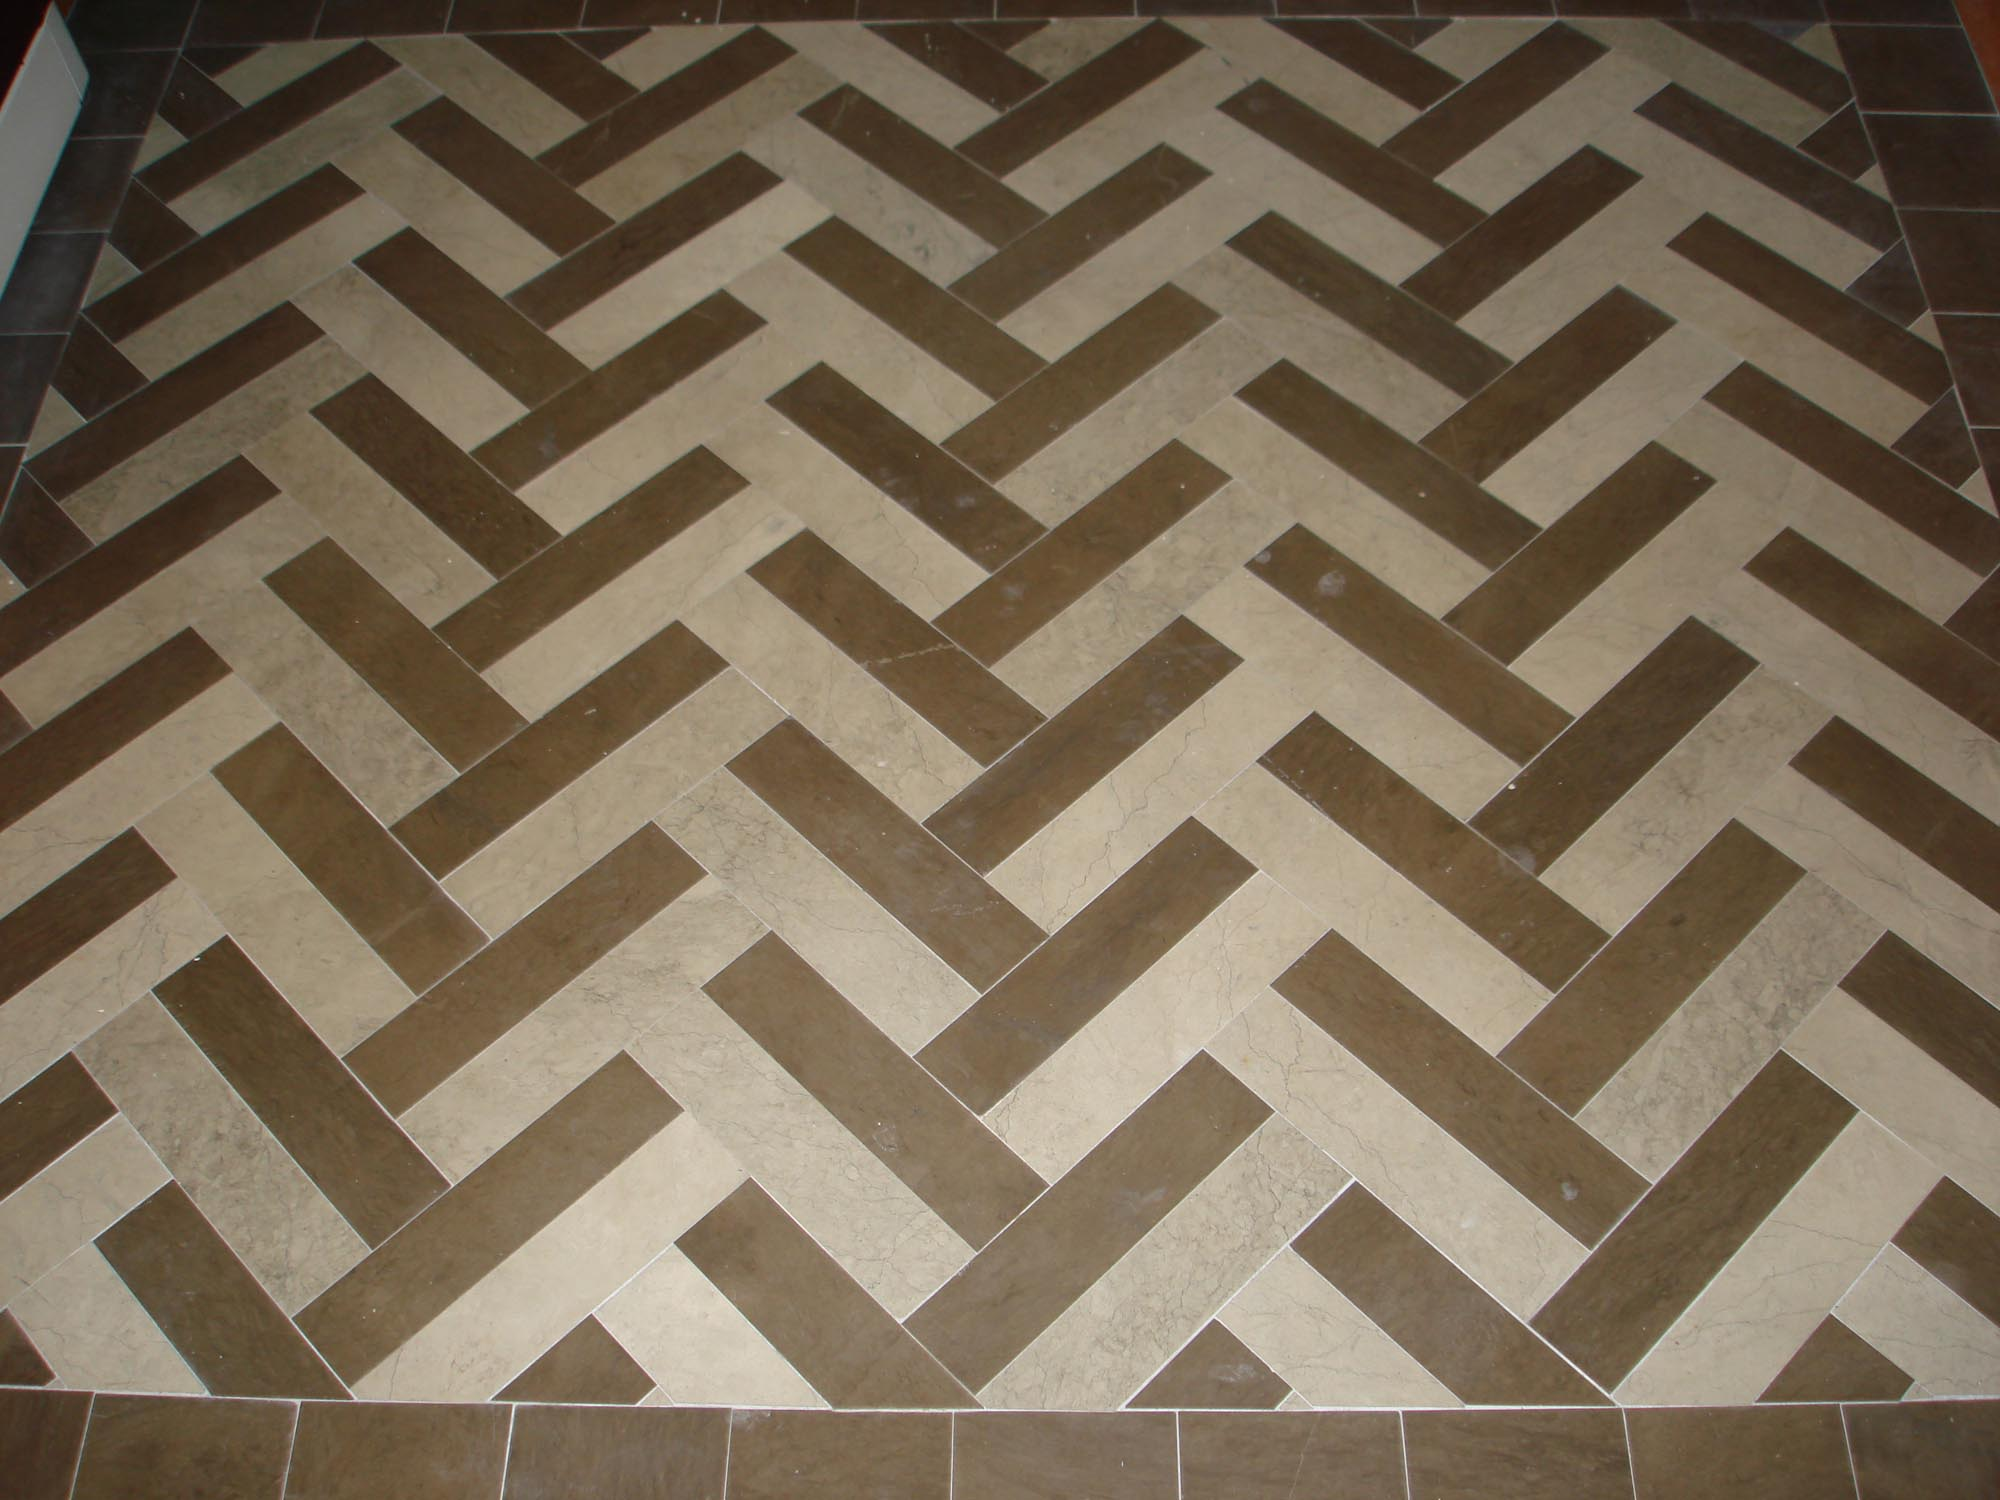 Marble 3x12 Tile Floor Display Herringbone Pattern With